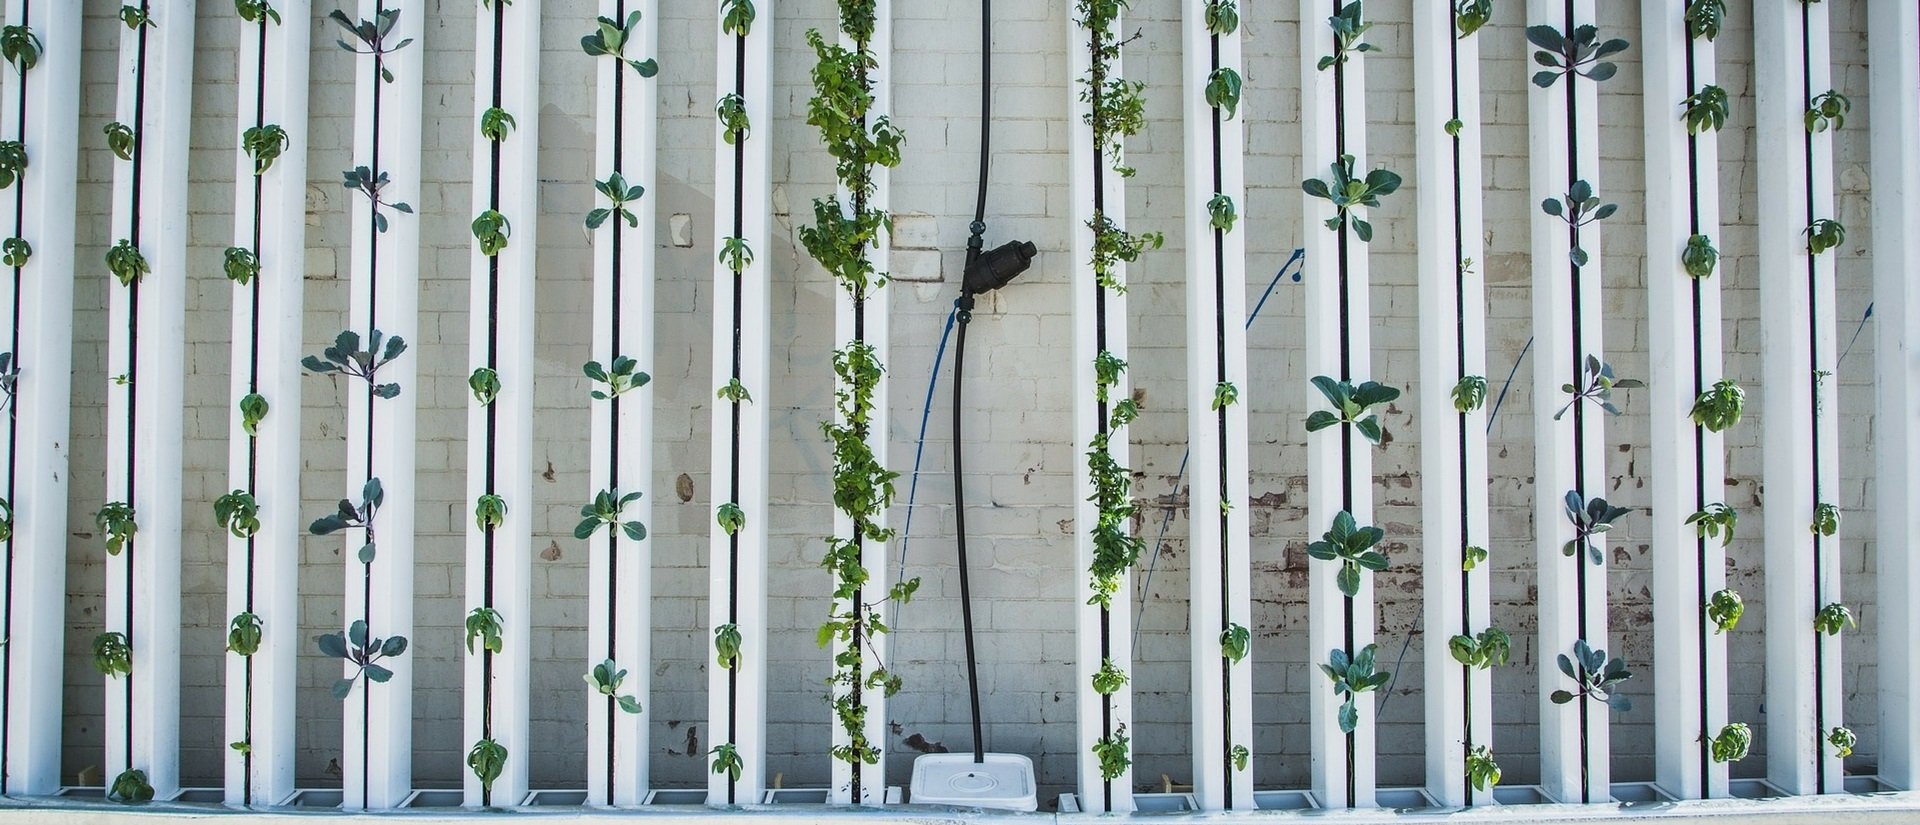 Vertical Farming - Sustainability